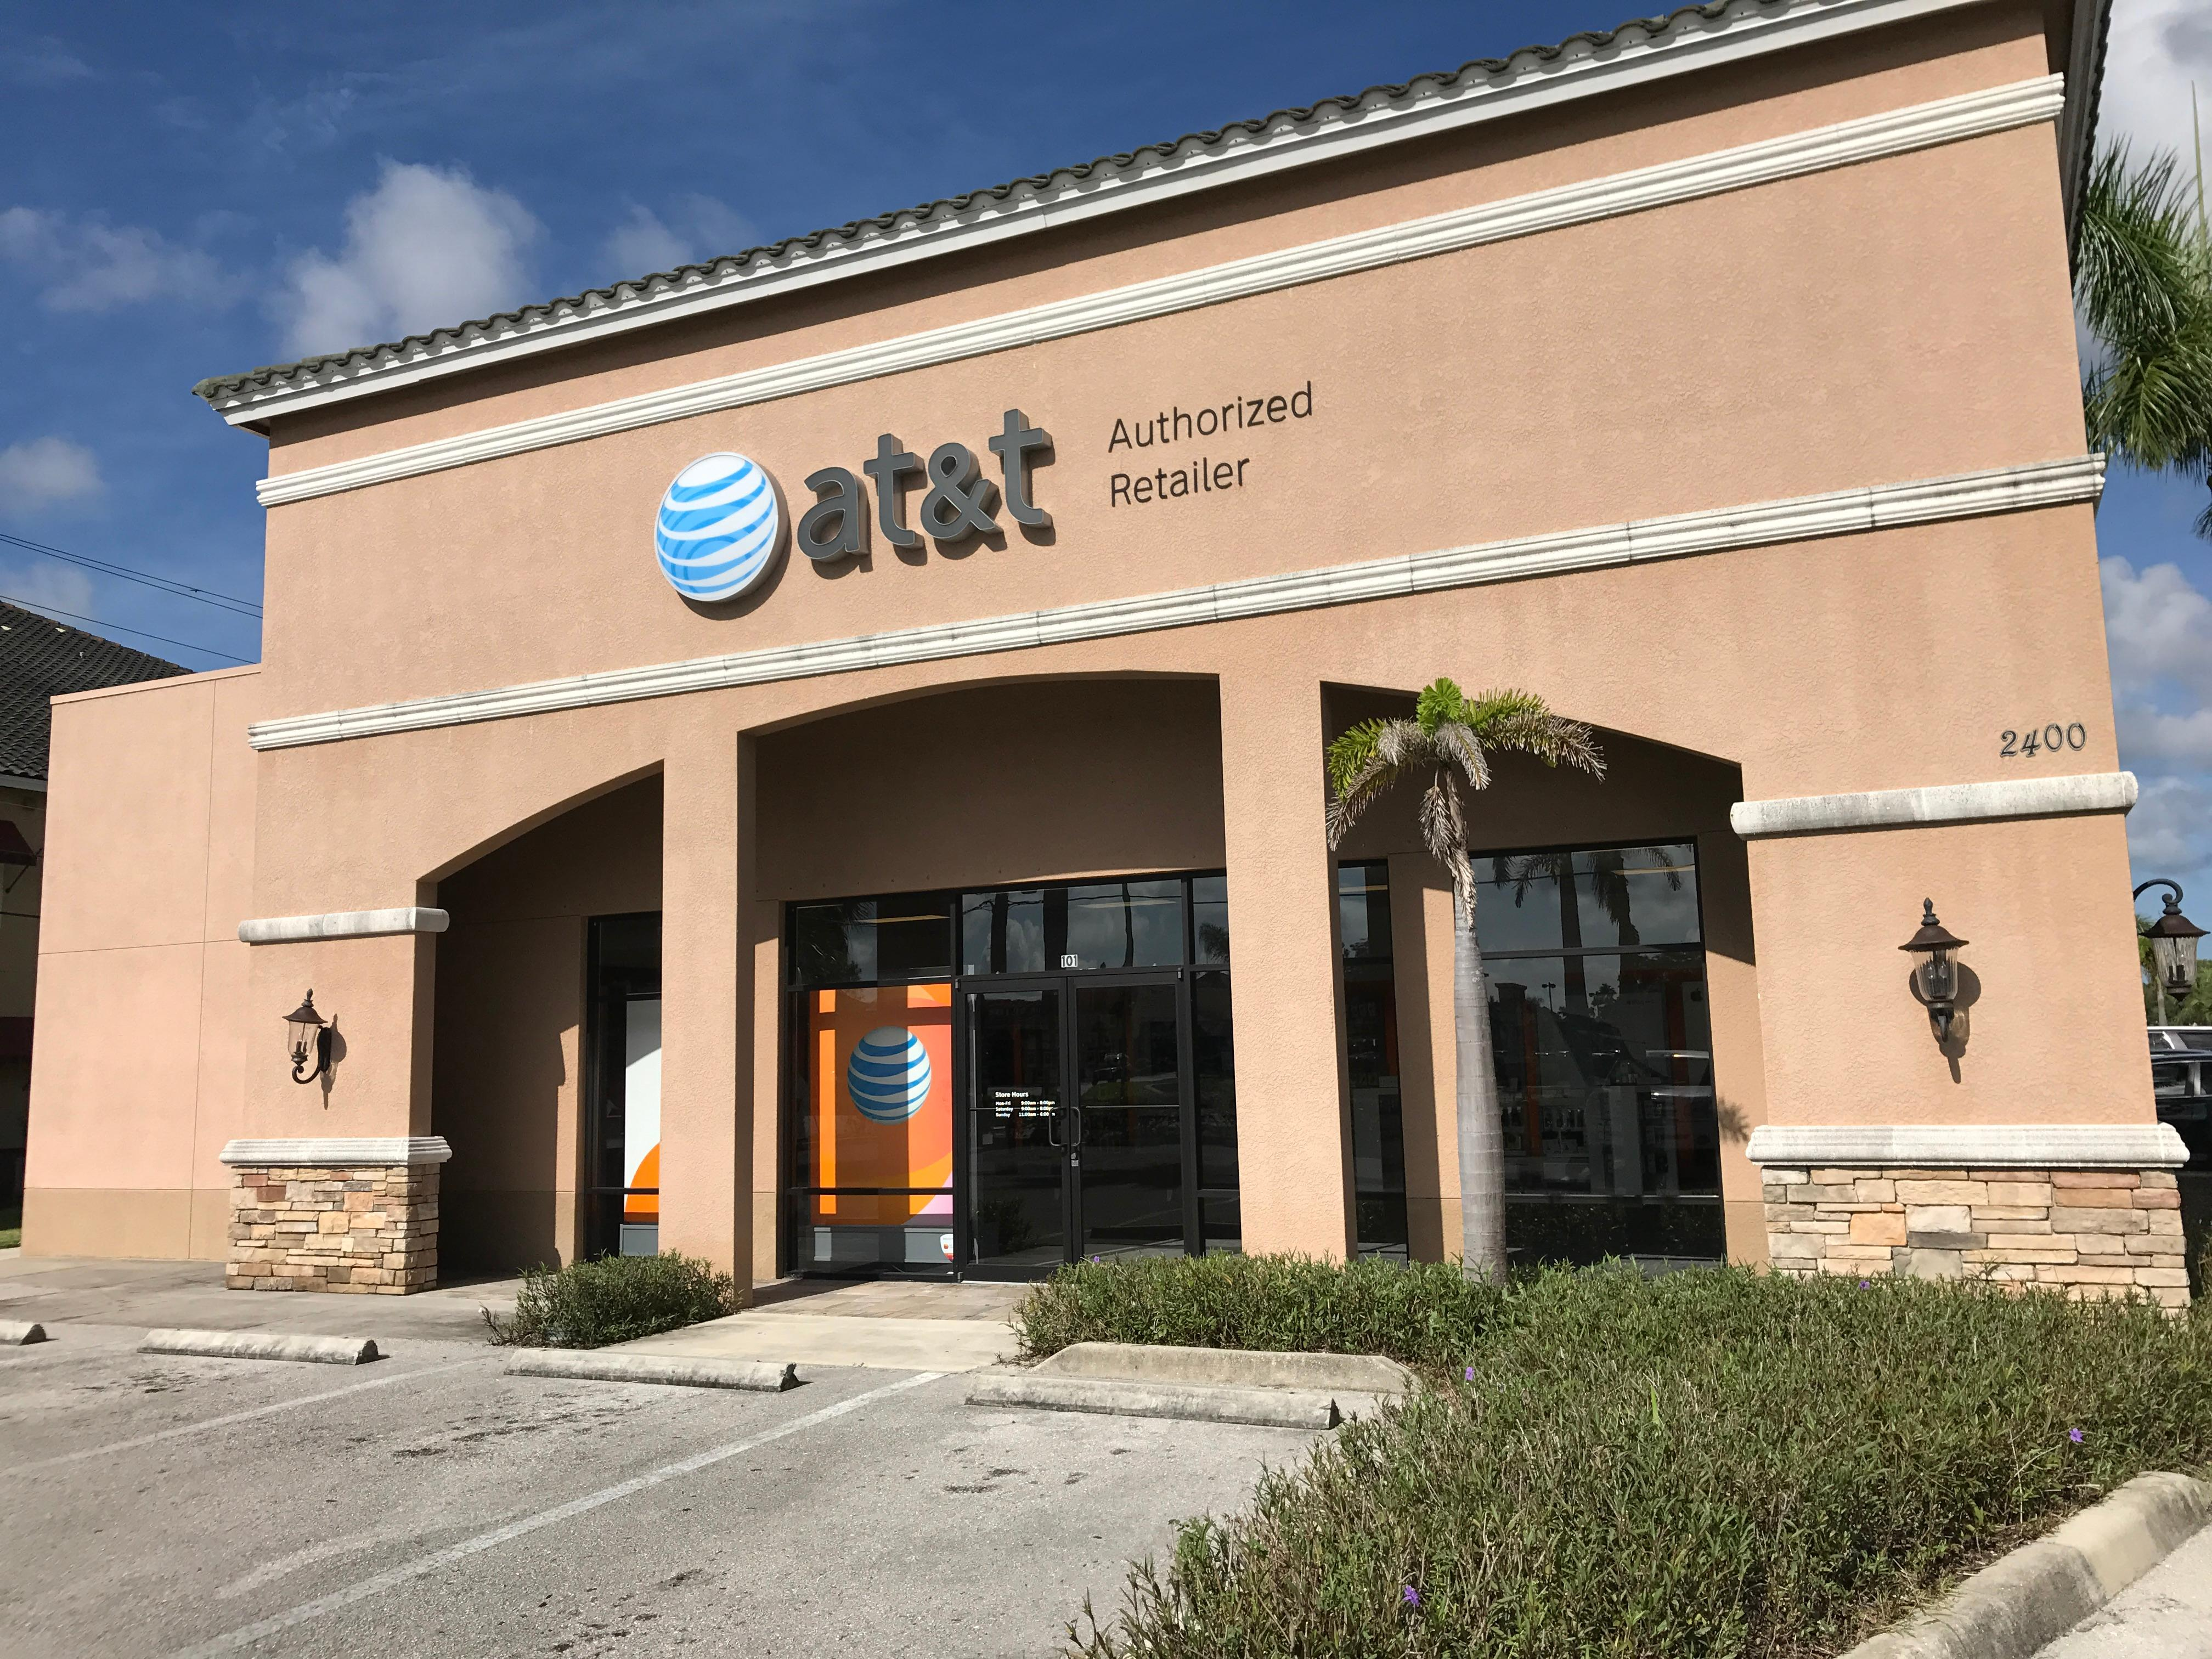 Our AT&T store in Naples, Florida is at Collier Blvd, Suite , at the intersection with Lely Grand Blvd. If you are coming from the South, take Route 41, Tamiami Trail East to Collier Blvd.